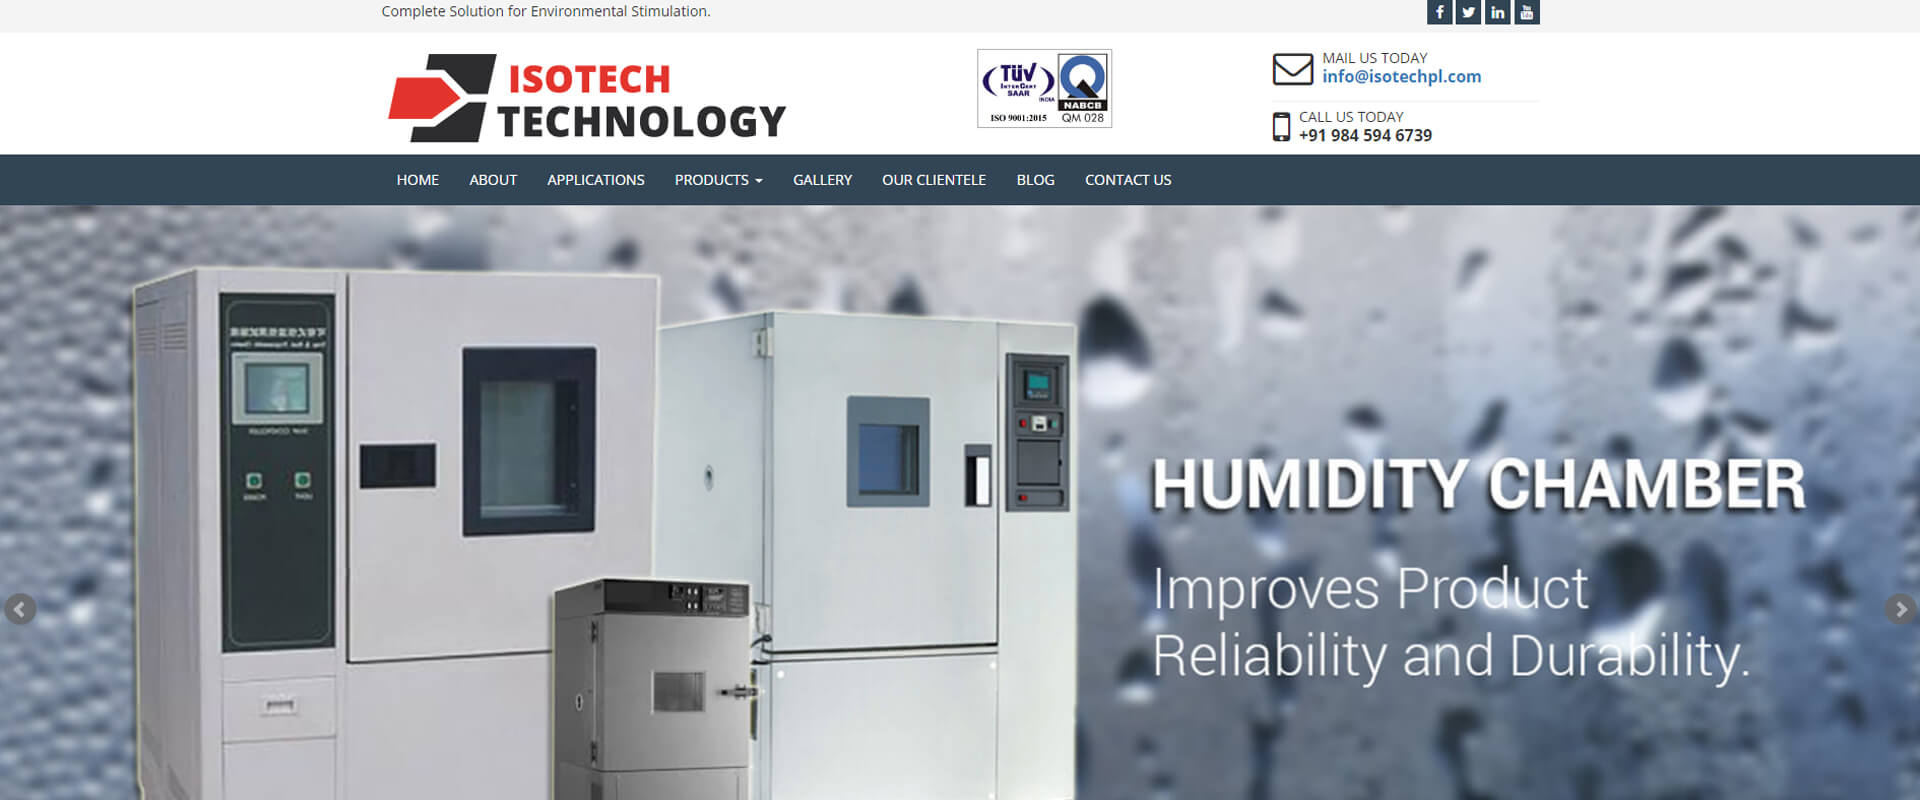 ISOTECH Website Design Layout